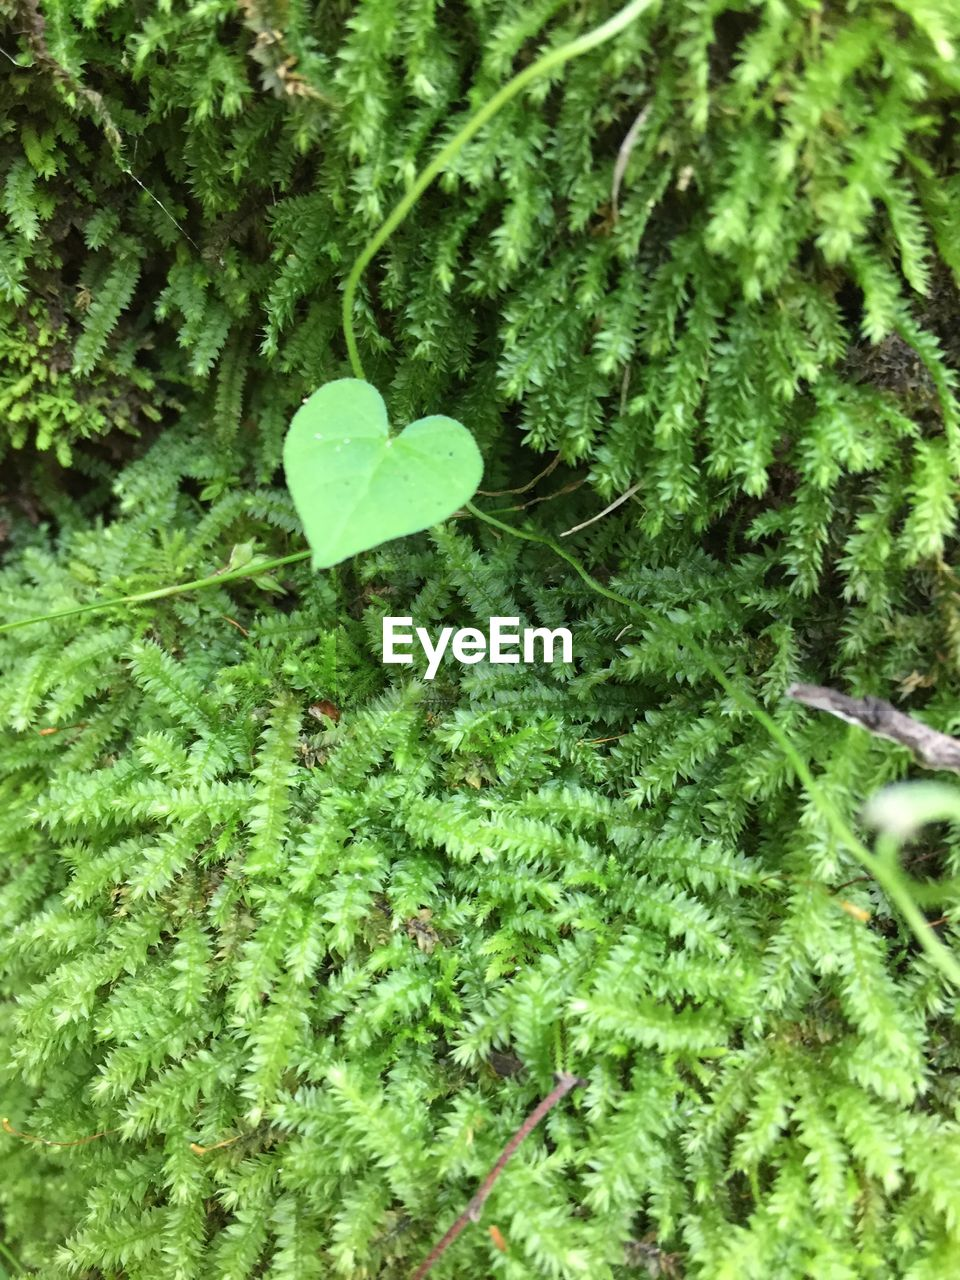 green color, plant, growth, leaf, plant part, nature, beauty in nature, close-up, no people, day, selective focus, high angle view, freshness, fragility, tranquility, vulnerability, outdoors, land, botany, green, clover